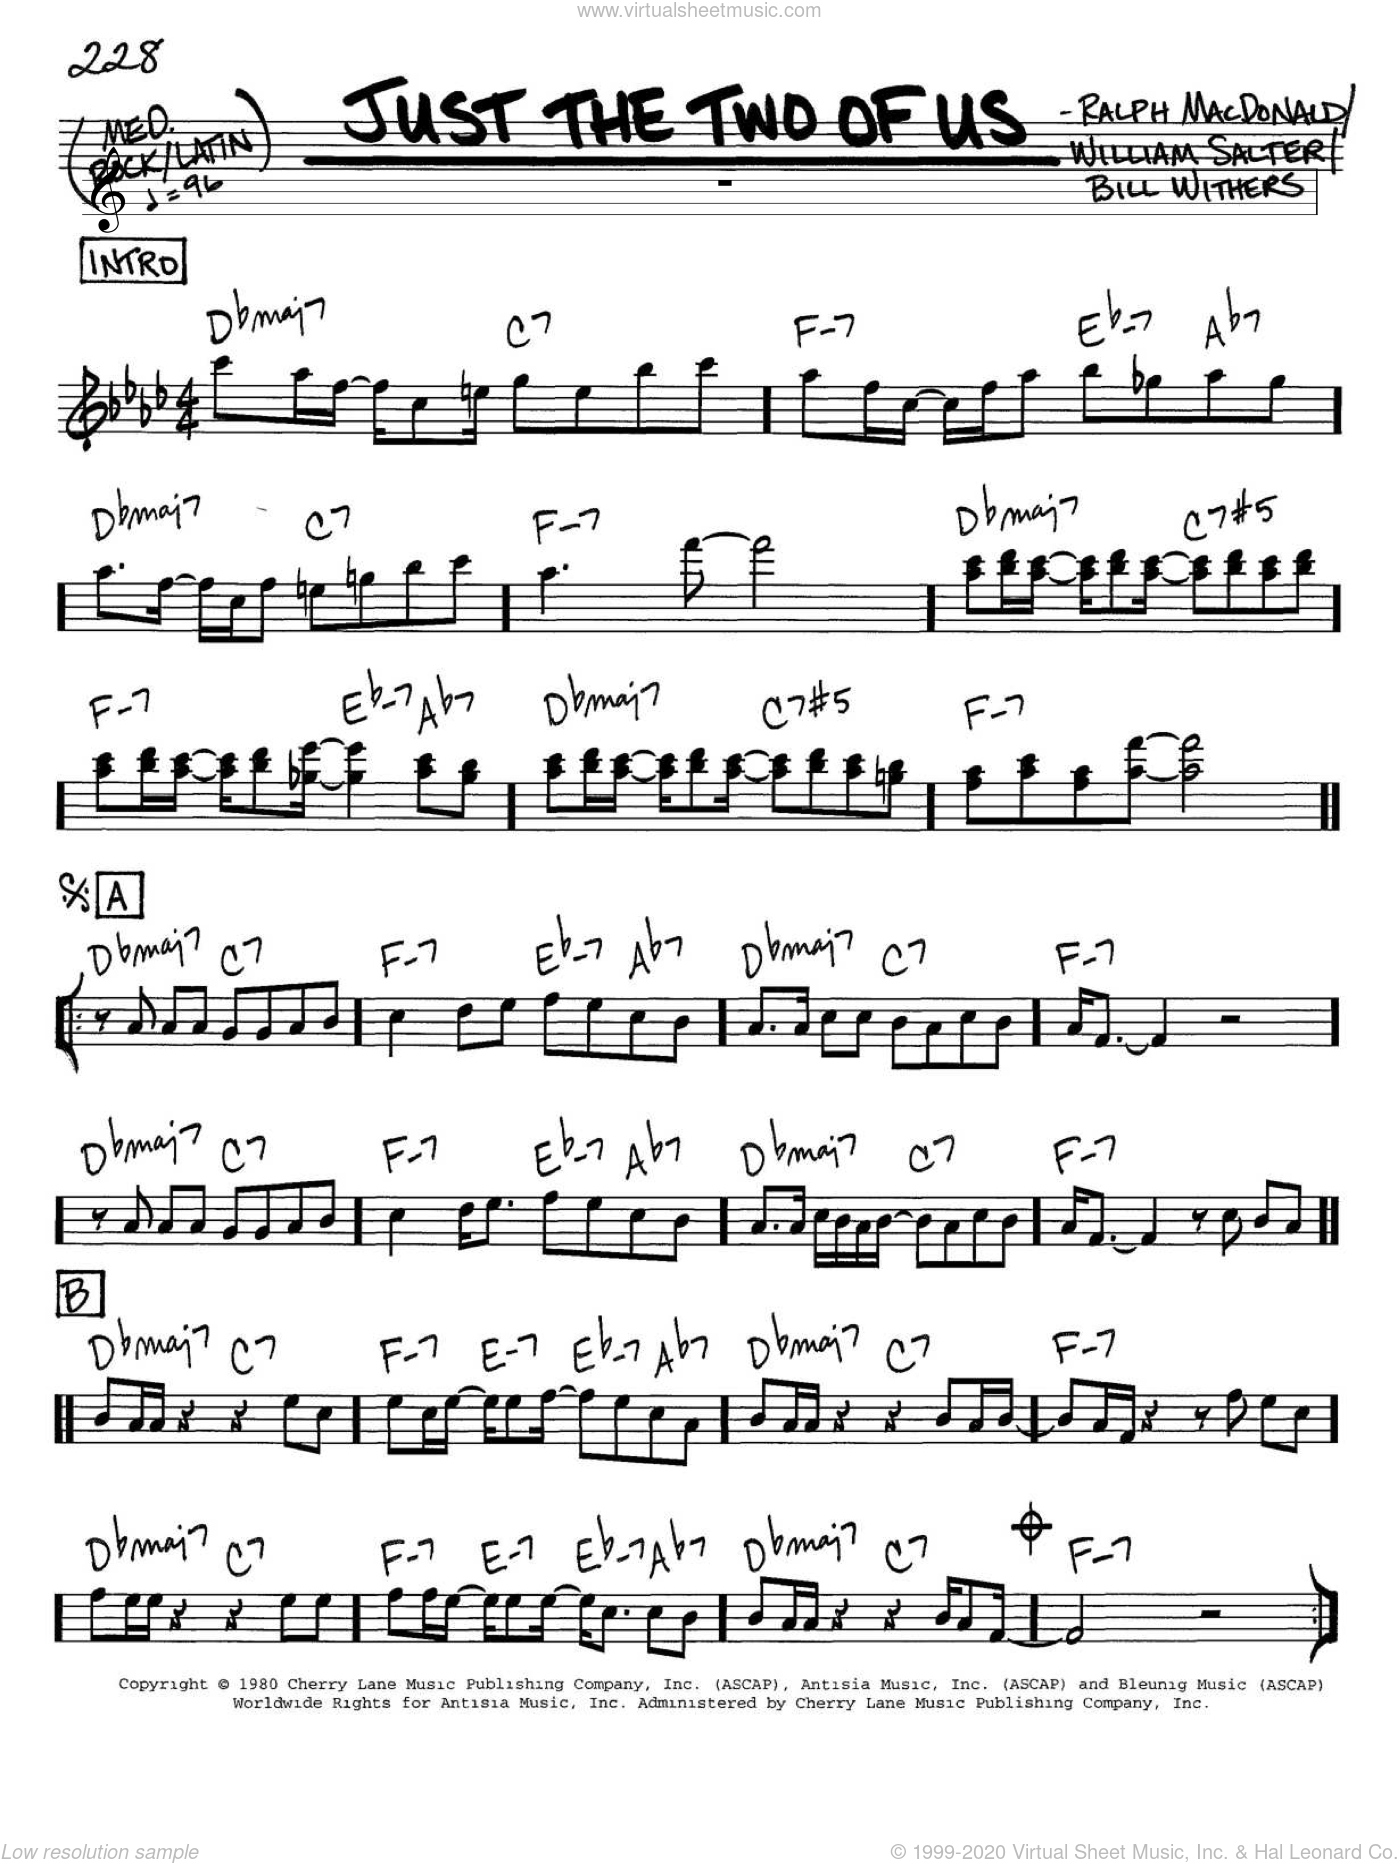 Just The Two Of Us sheet music for voice and other instruments (in C) by Grover Washington Jr., Grover Washington Jr. feat. Bill Withers, Bill Withers, Ralph MacDonald and William Salter, wedding score, intermediate skill level